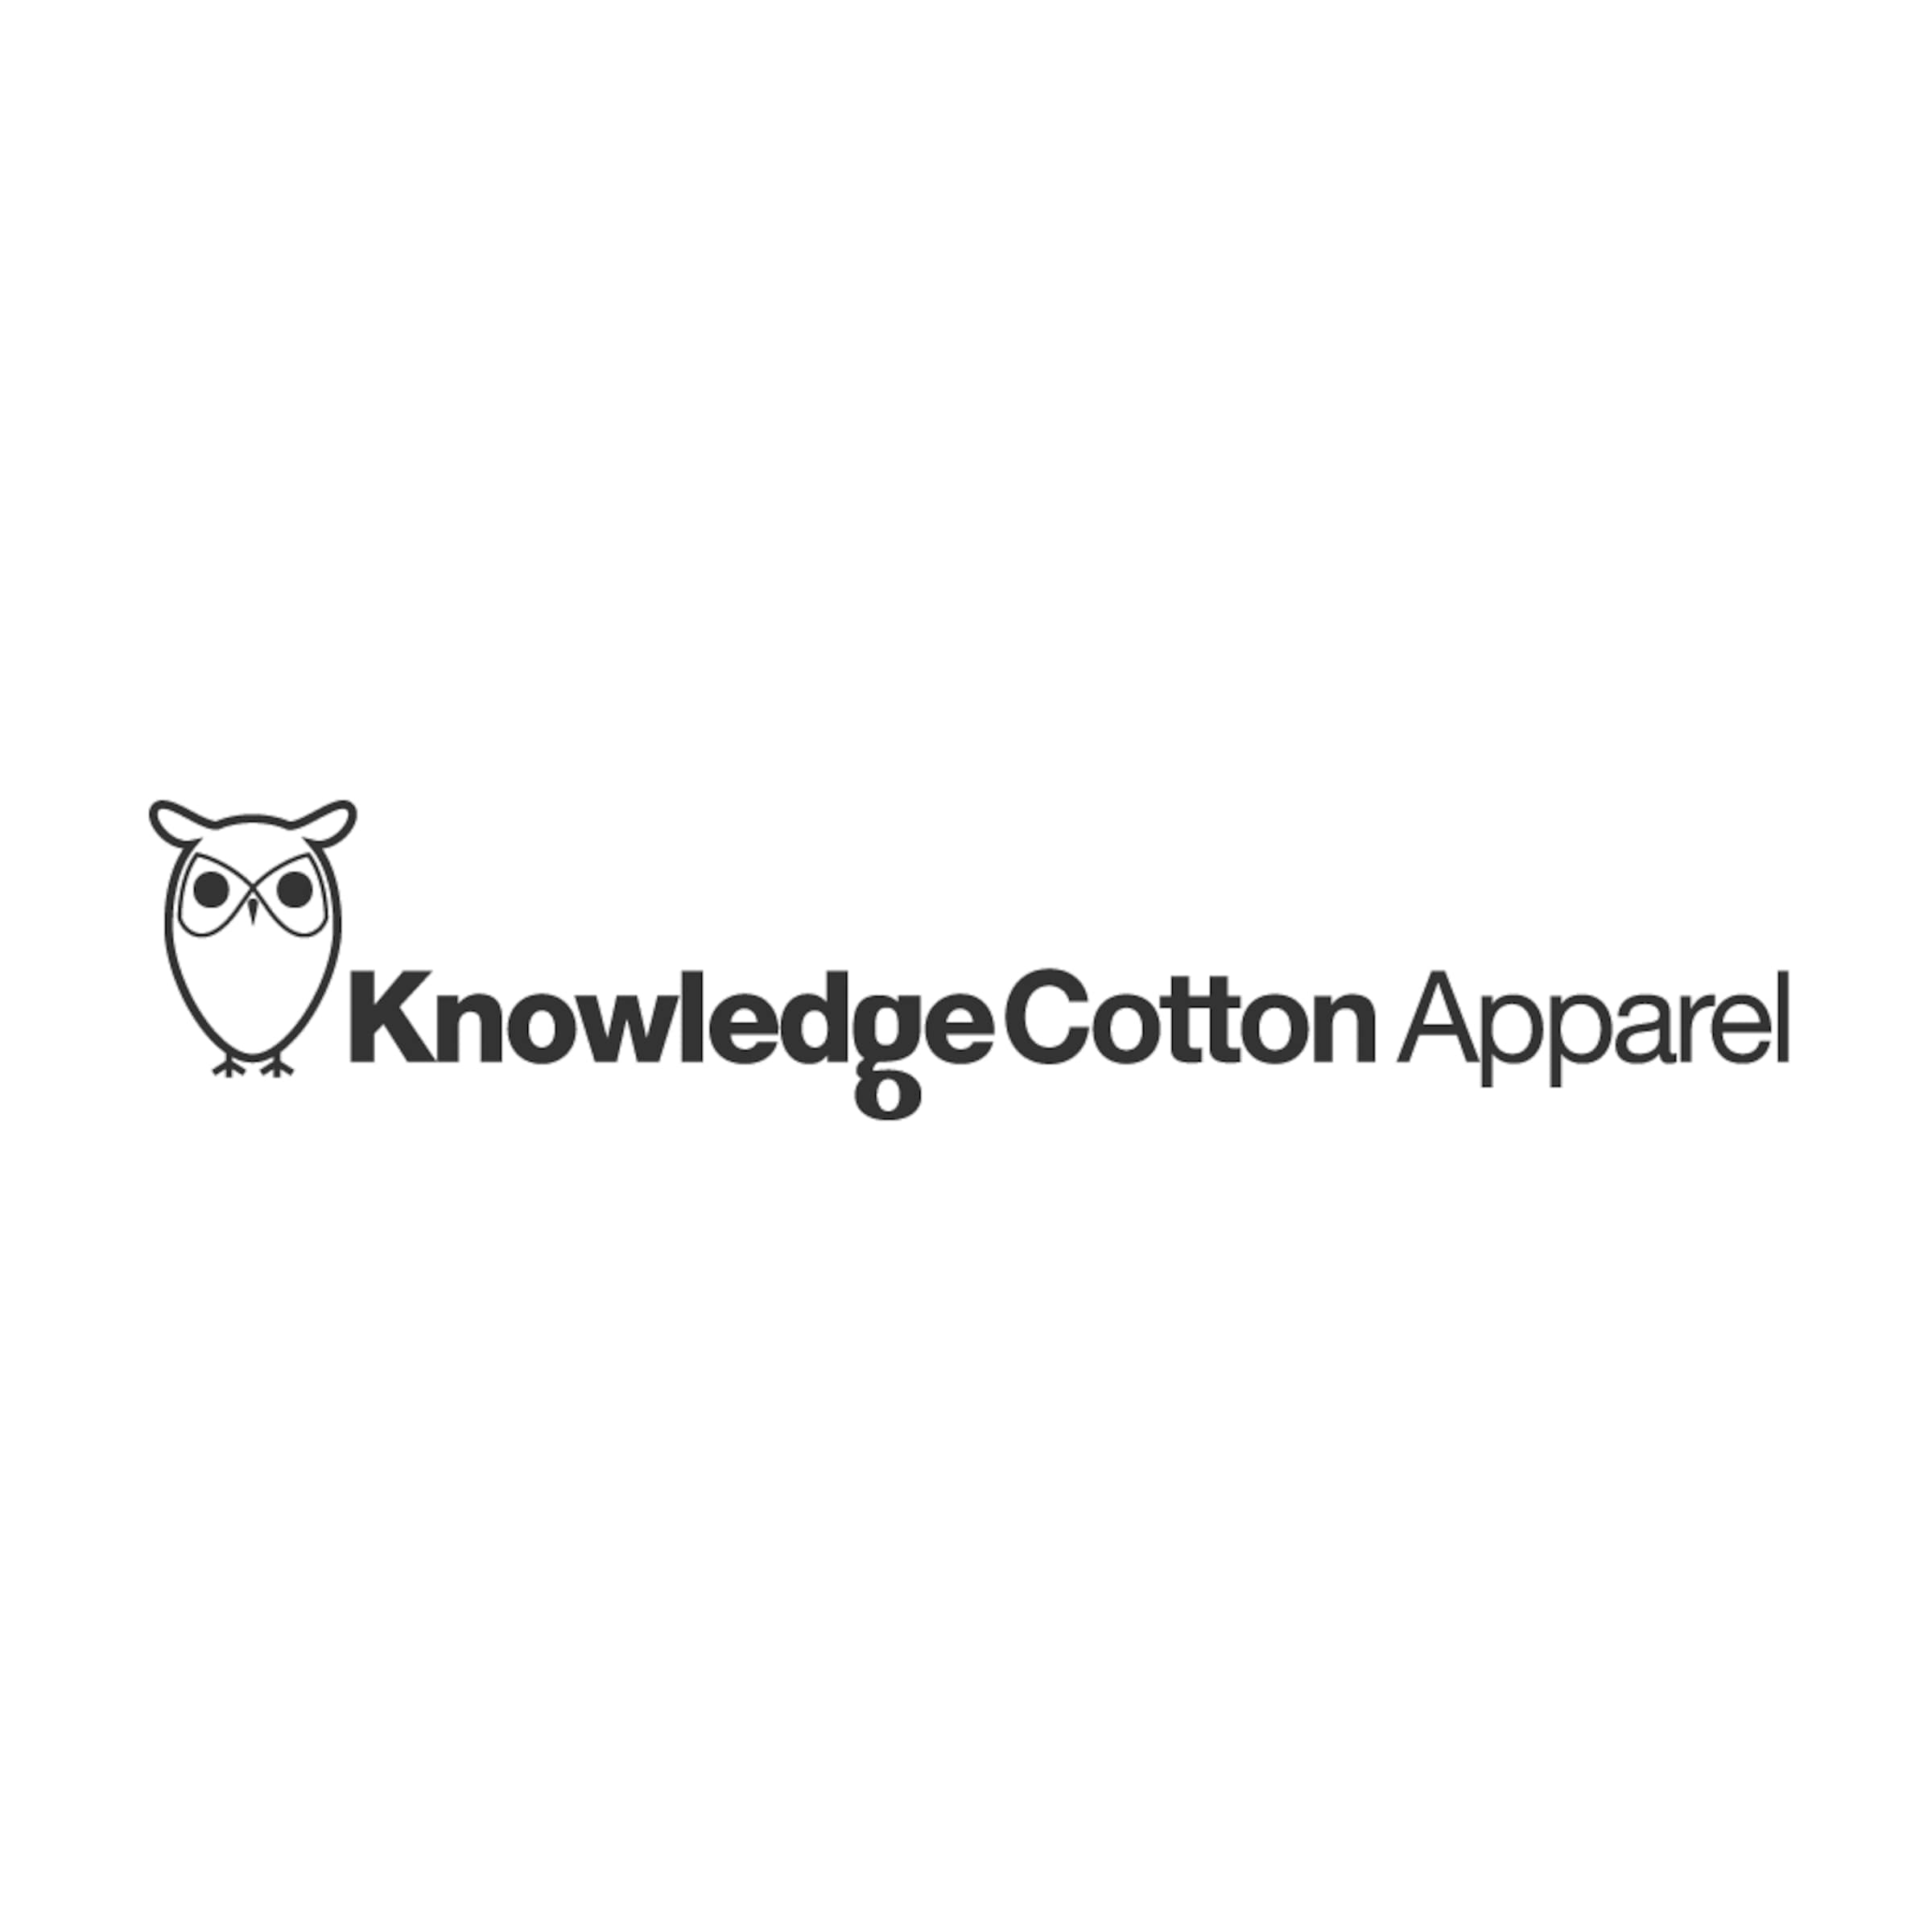 KnowledgeCotton Apparel